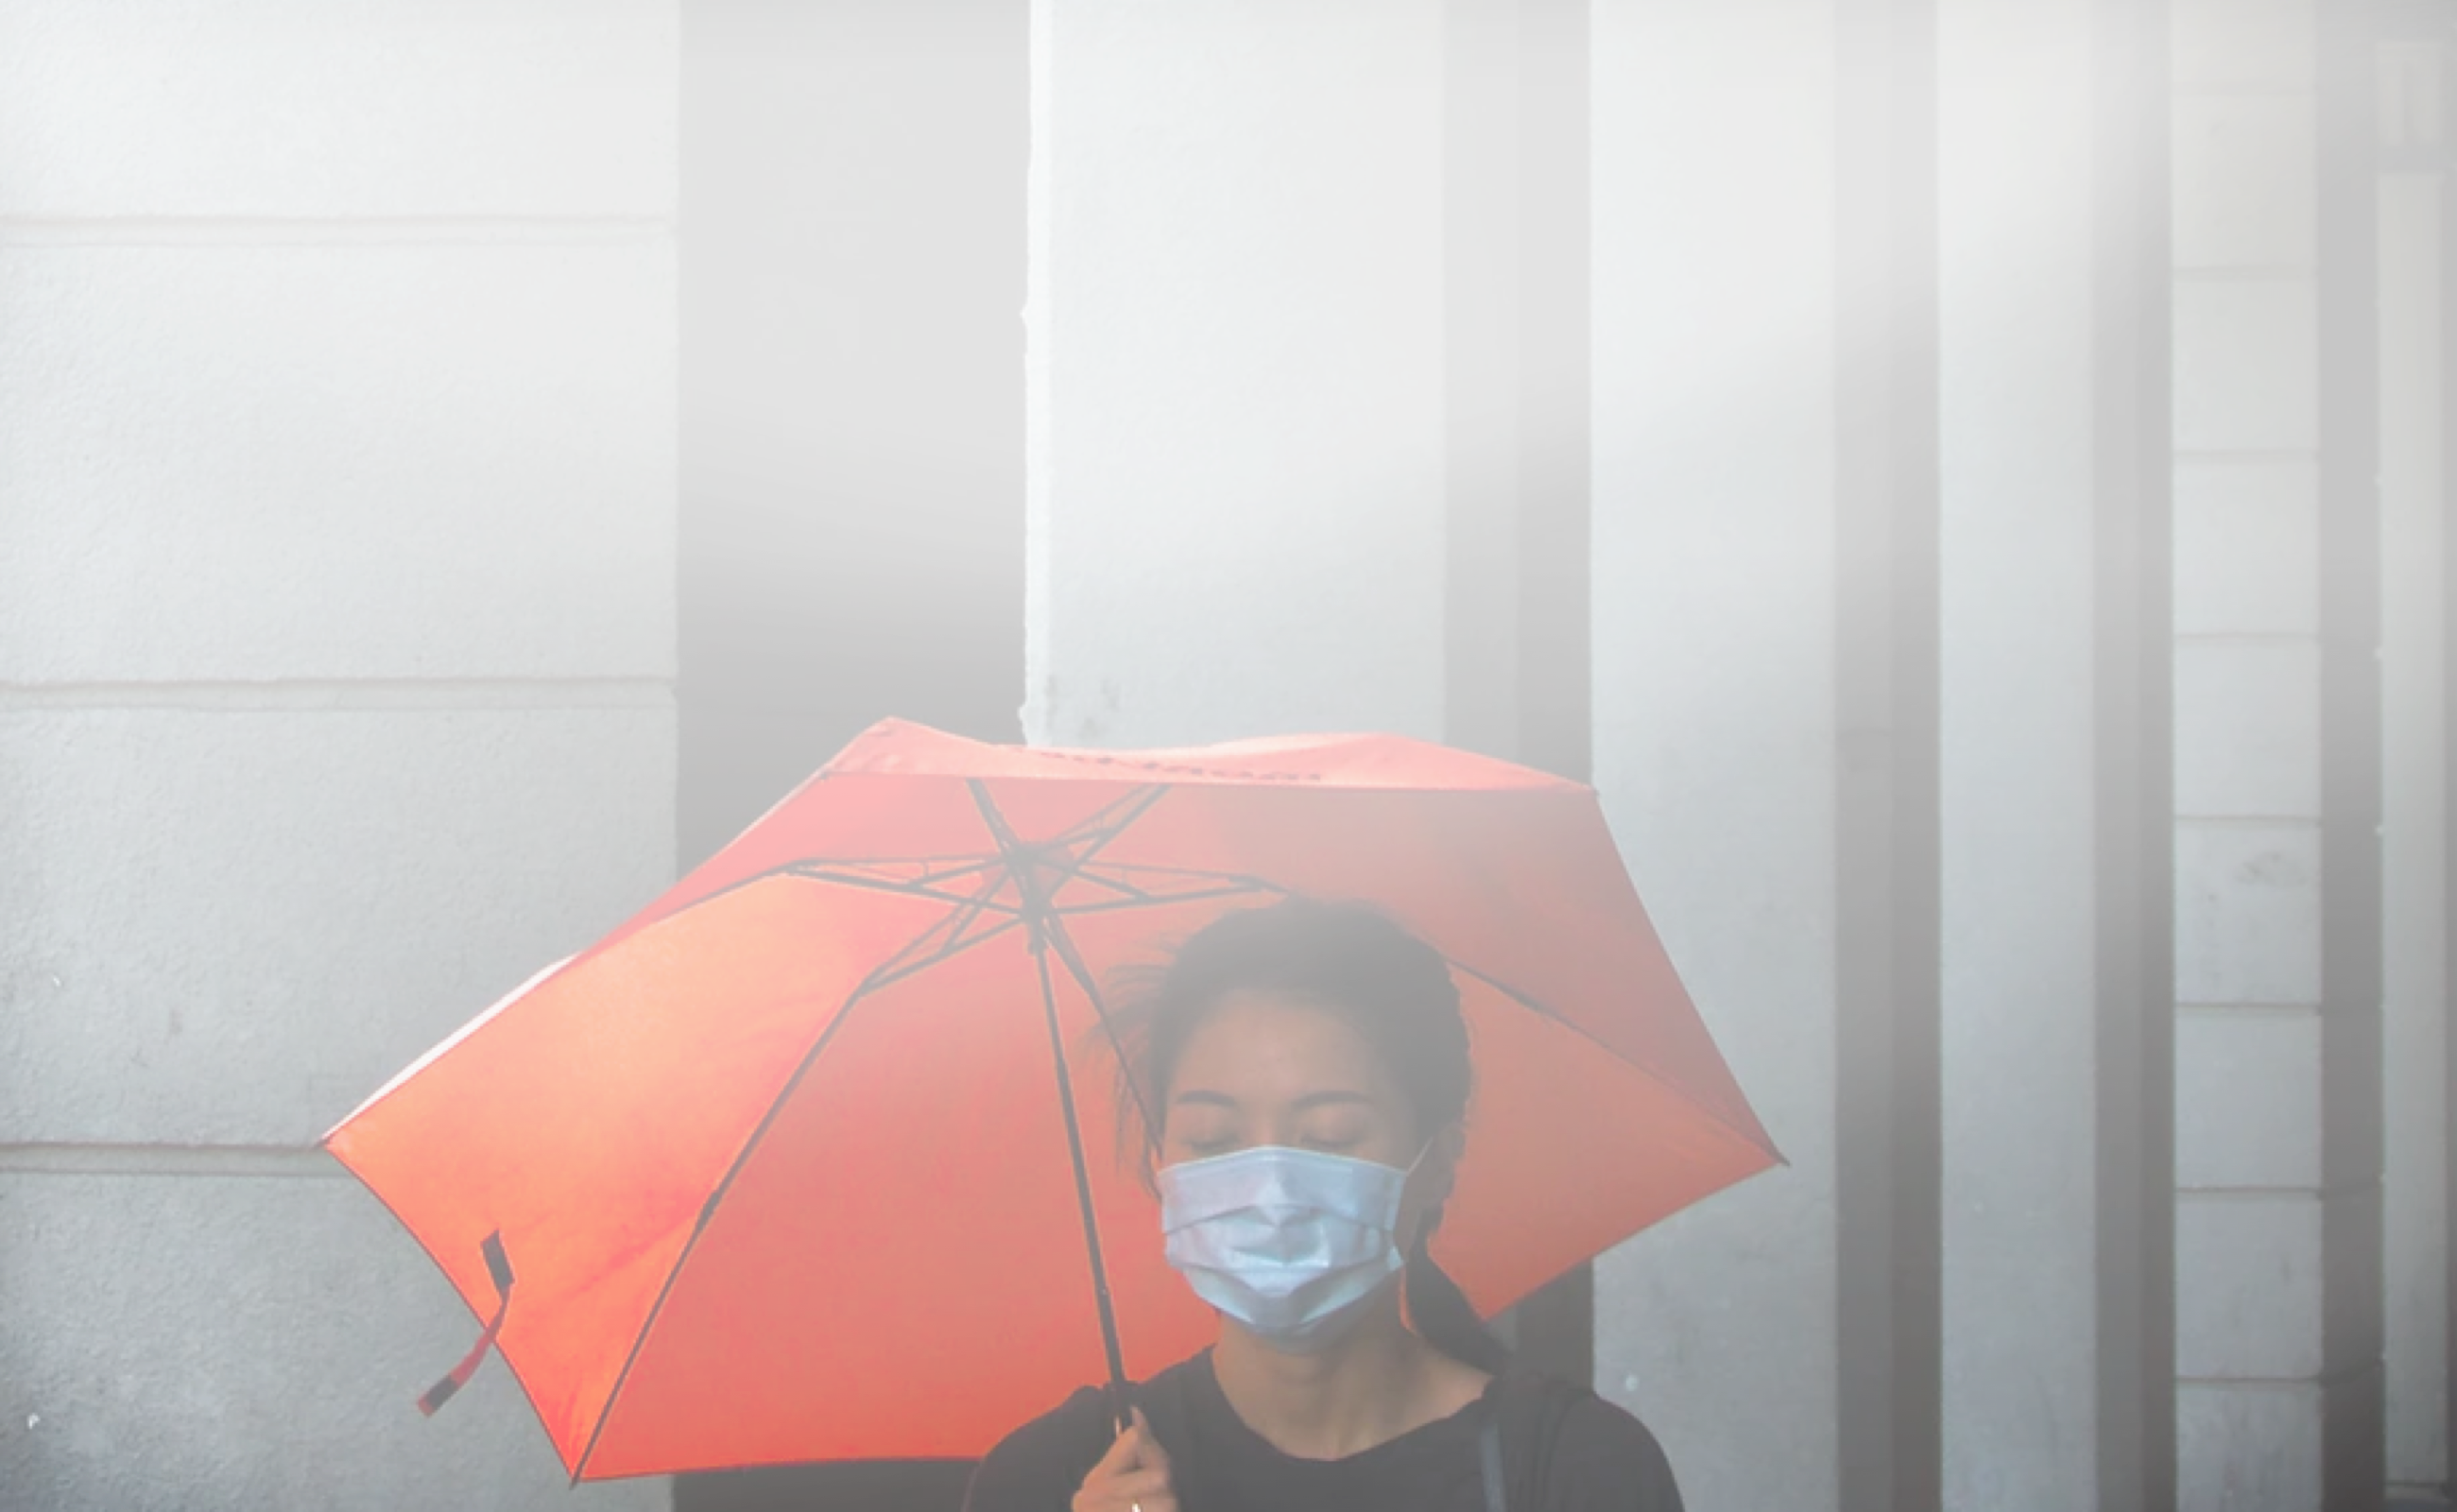 A woman wearing a face mask and carrying a red umbrella walks down a rainy street, while looking at her phone